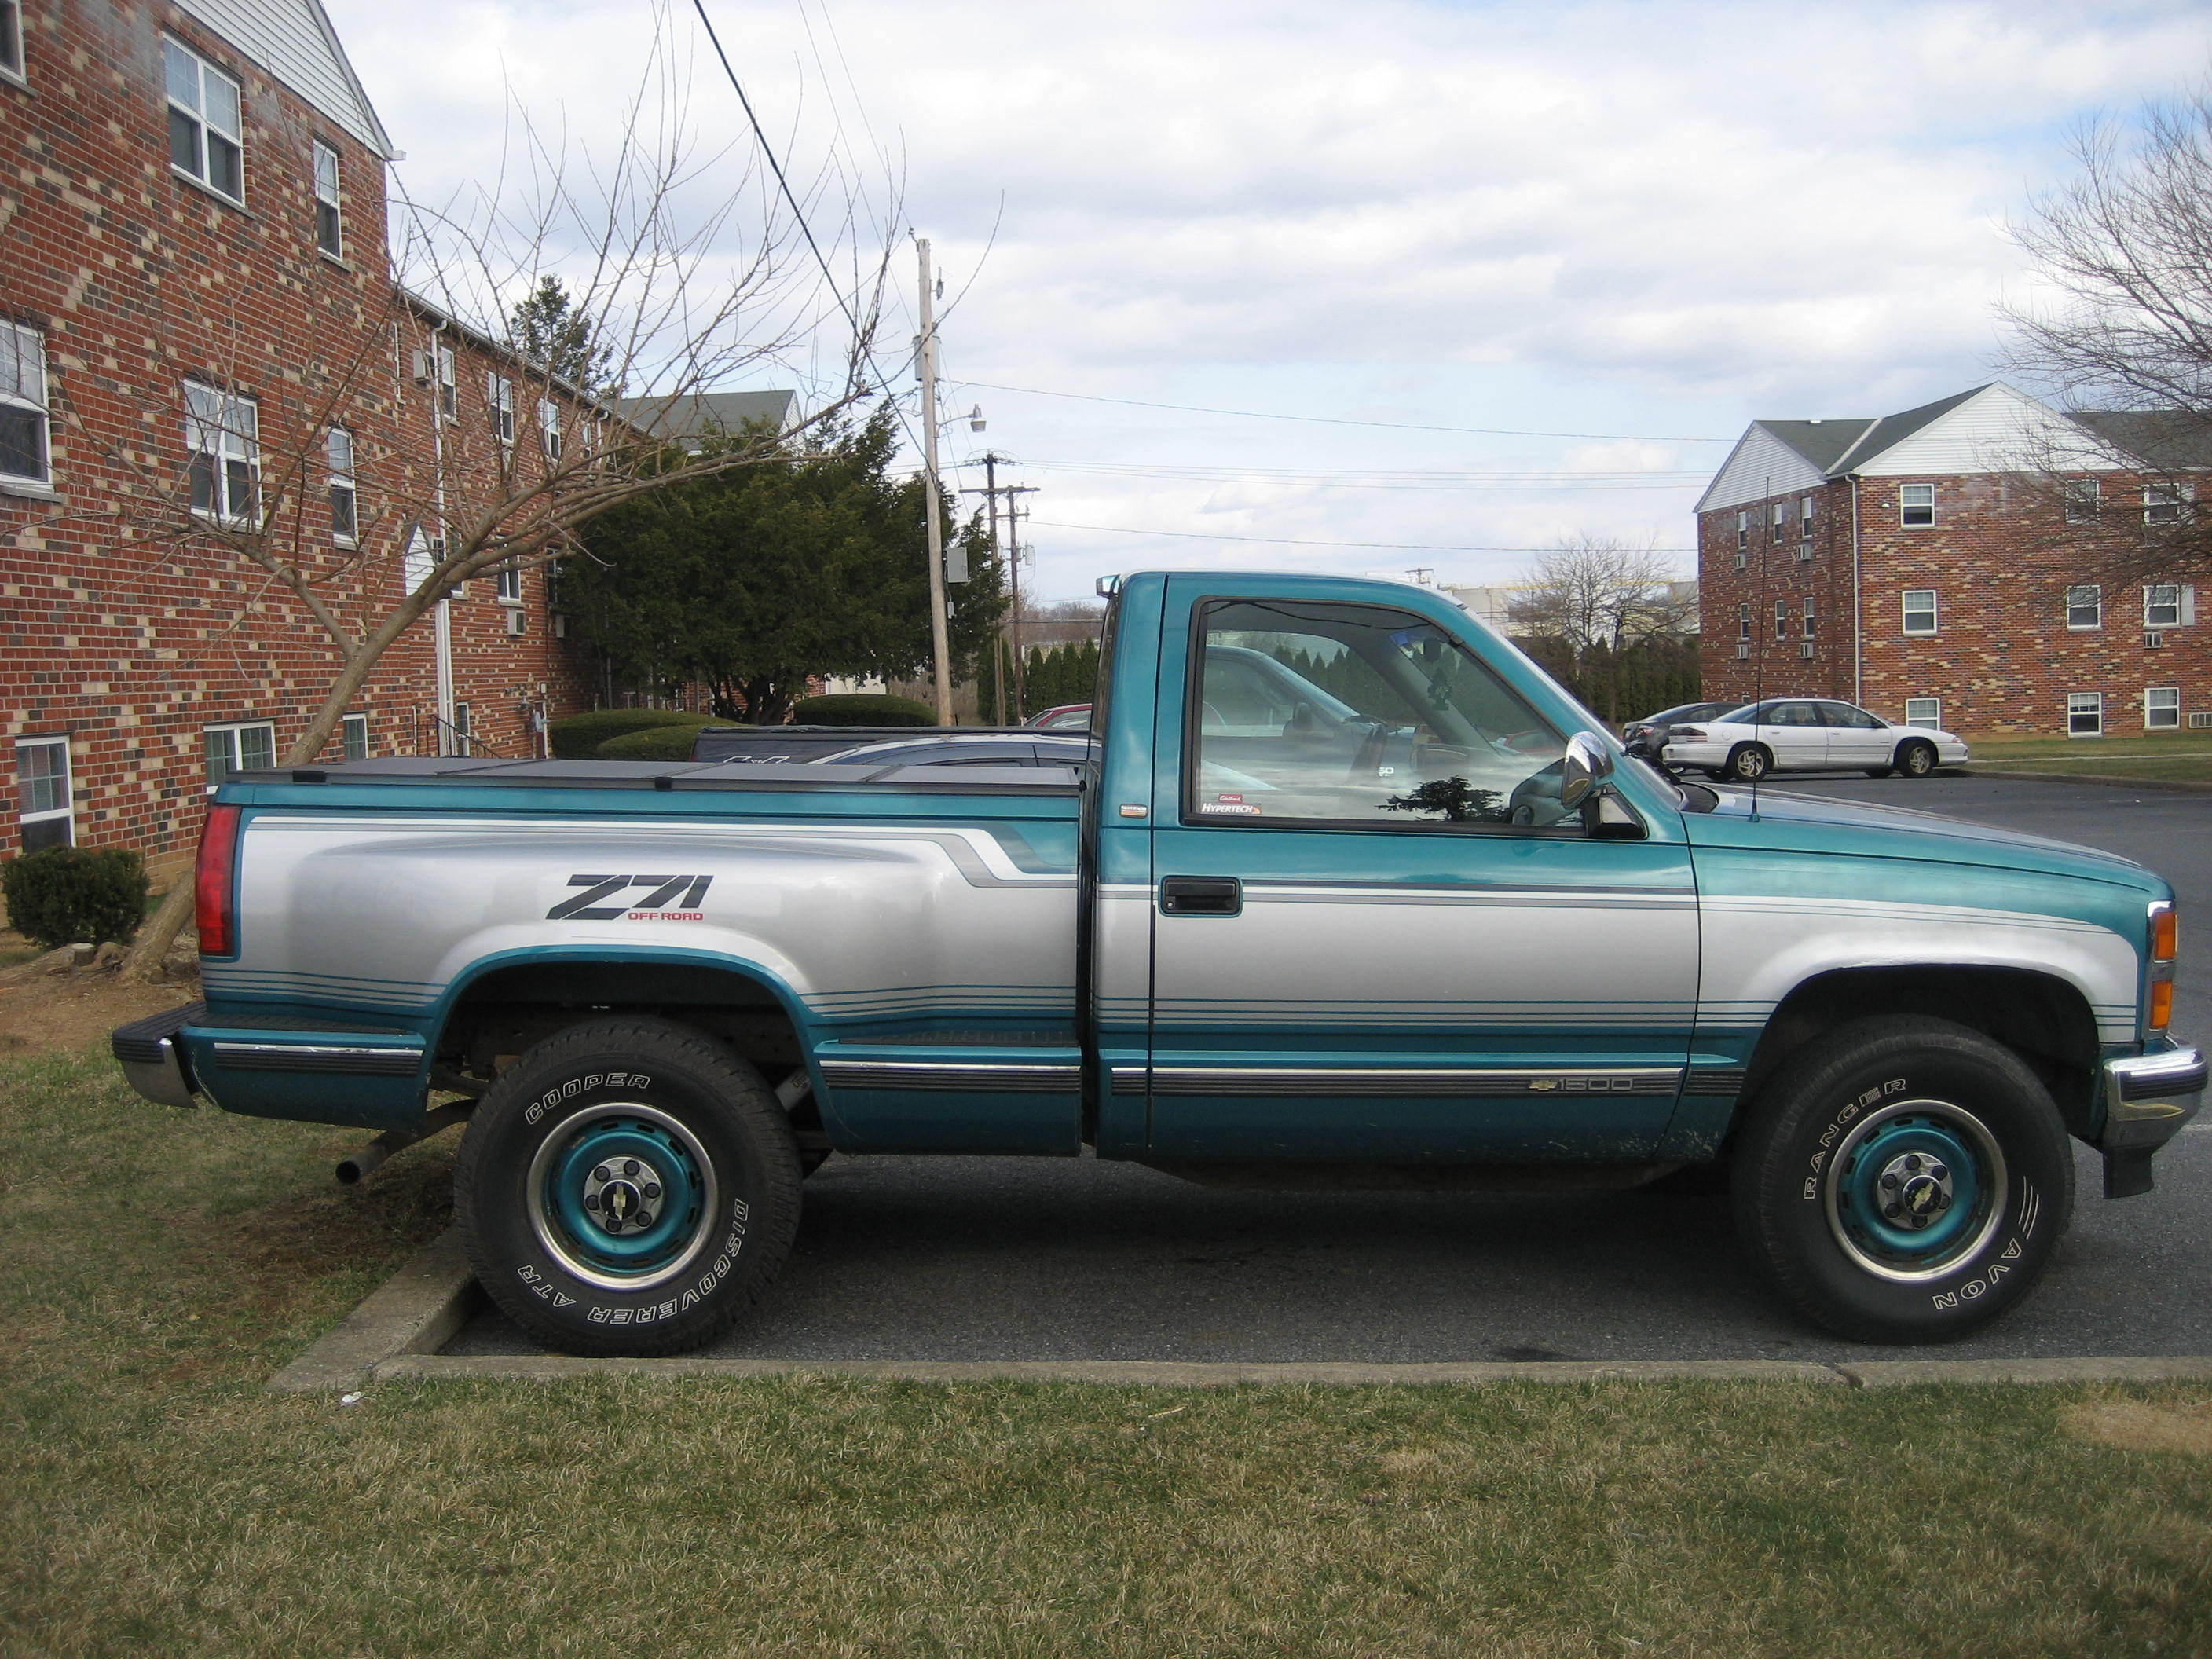 maxima_god 1993 Chevrolet Silverado 1500 Regular Cab